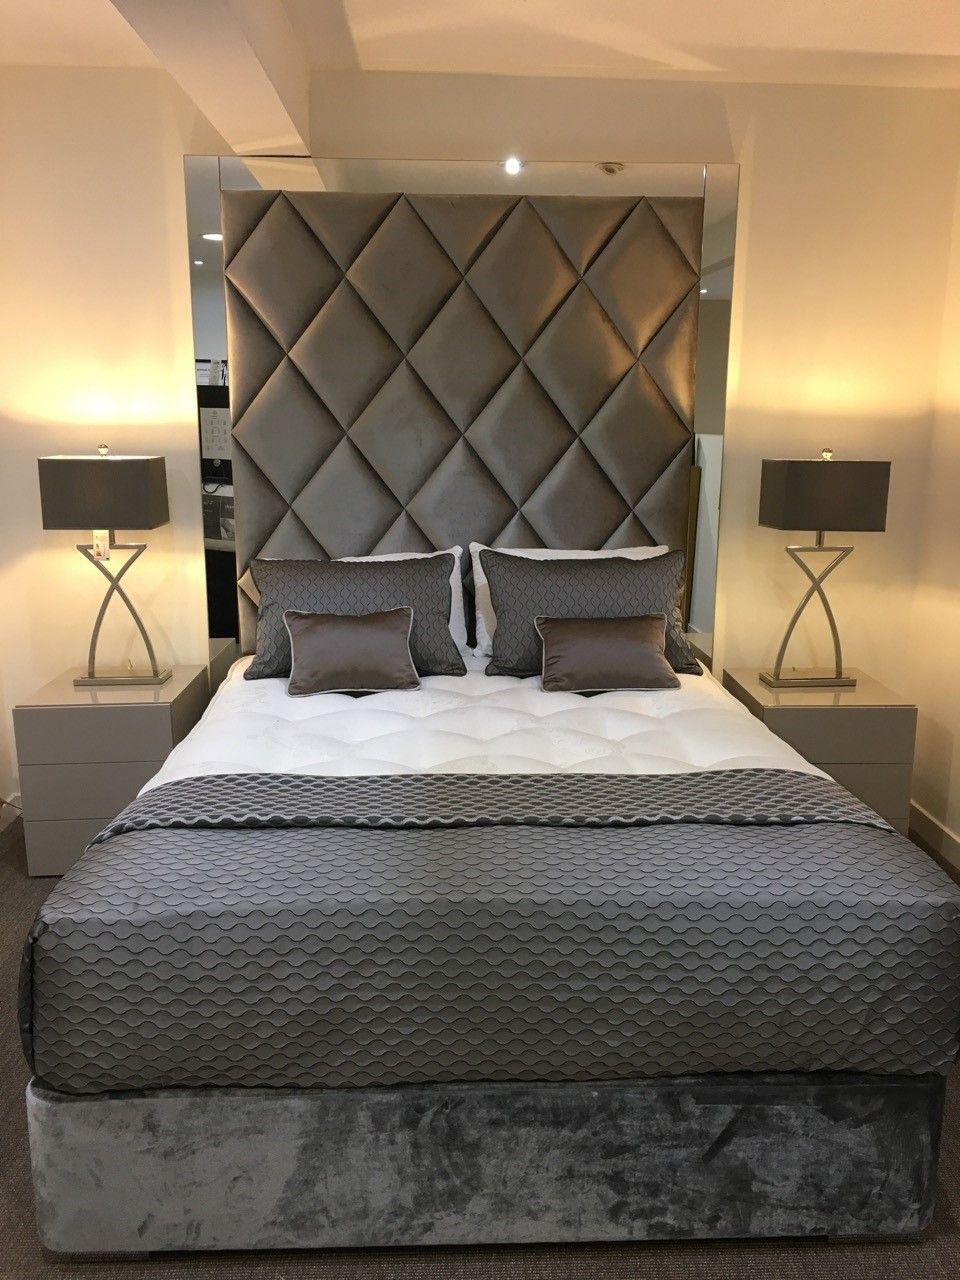 Upholstered headboard with mirrored surround on this